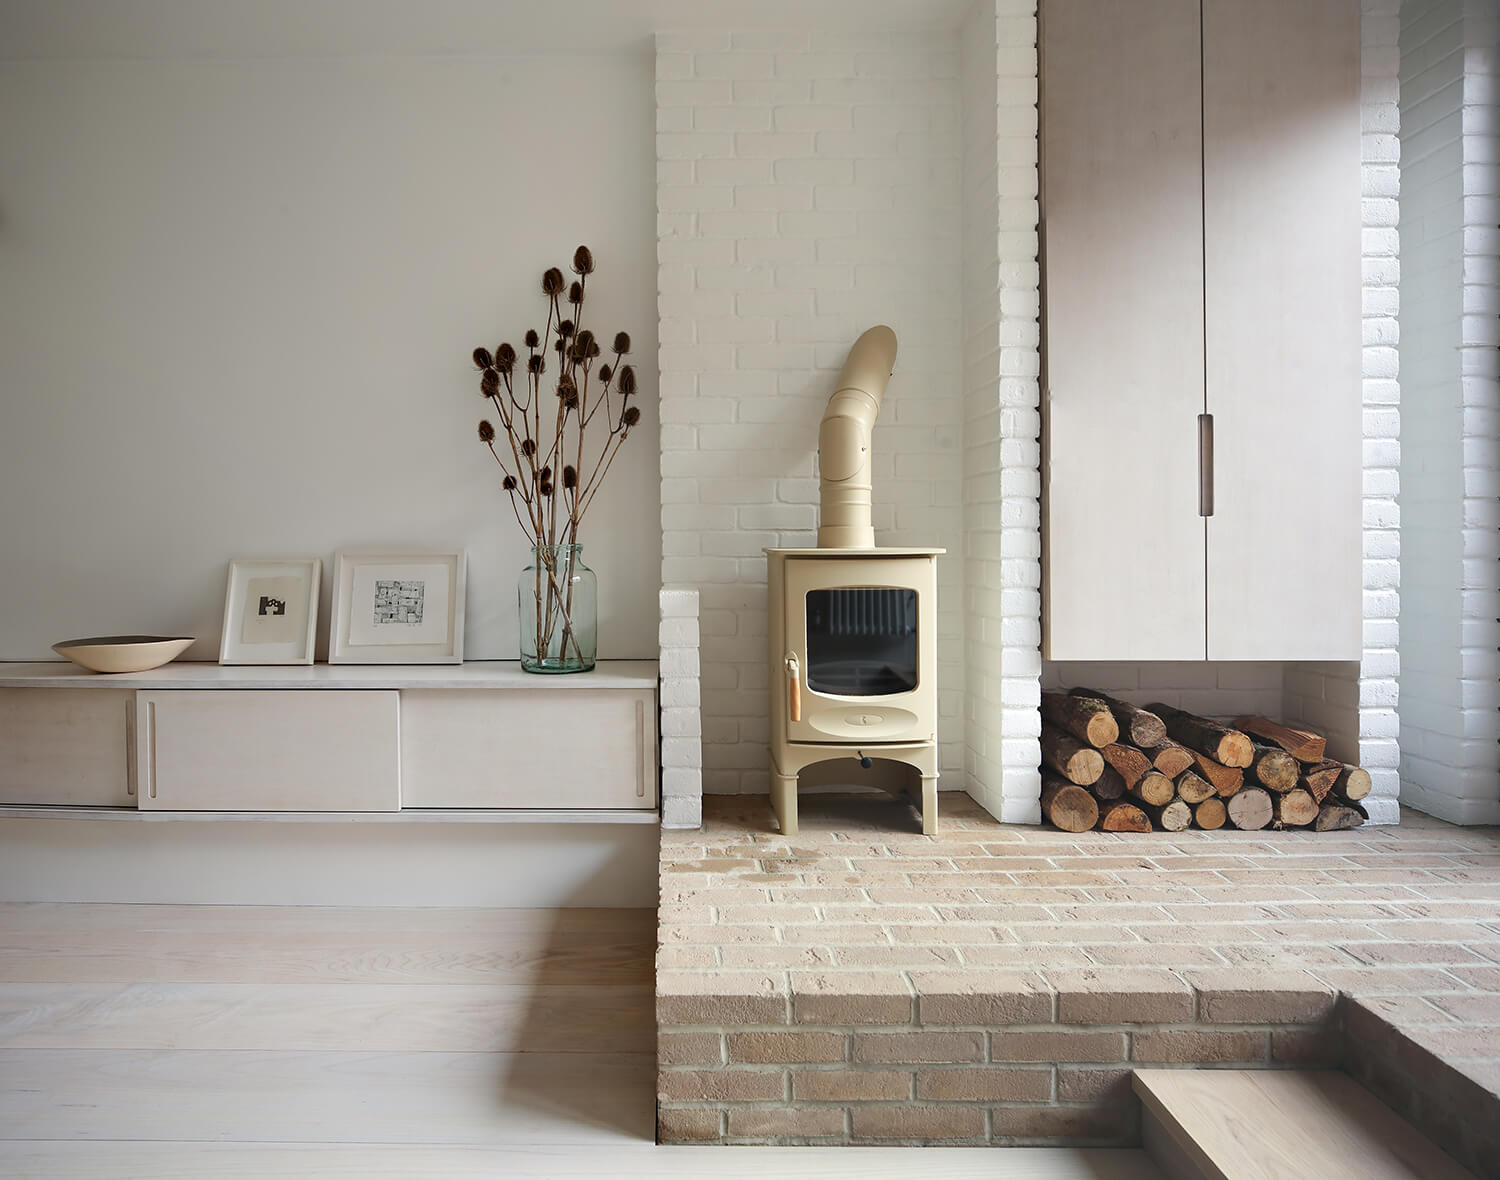 Bruton-Narrow-House-Somerset-Prewett-Bizley-Architects-Stove-Ash